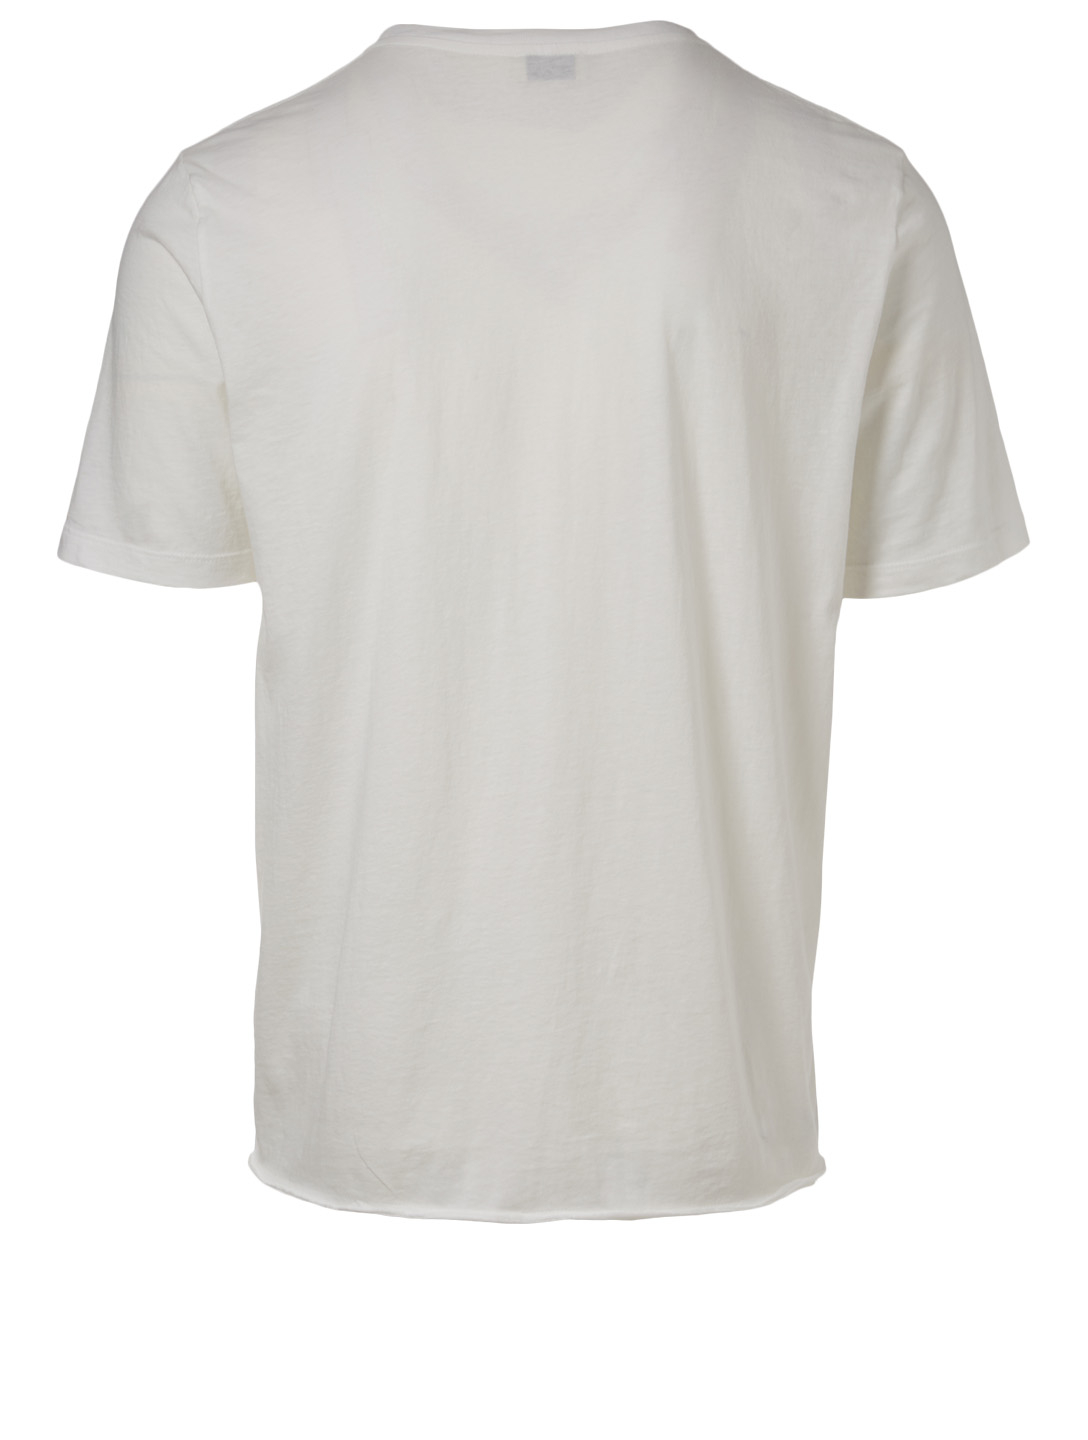 SAINT LAURENT Cotton Logo T-Shirt Men's White